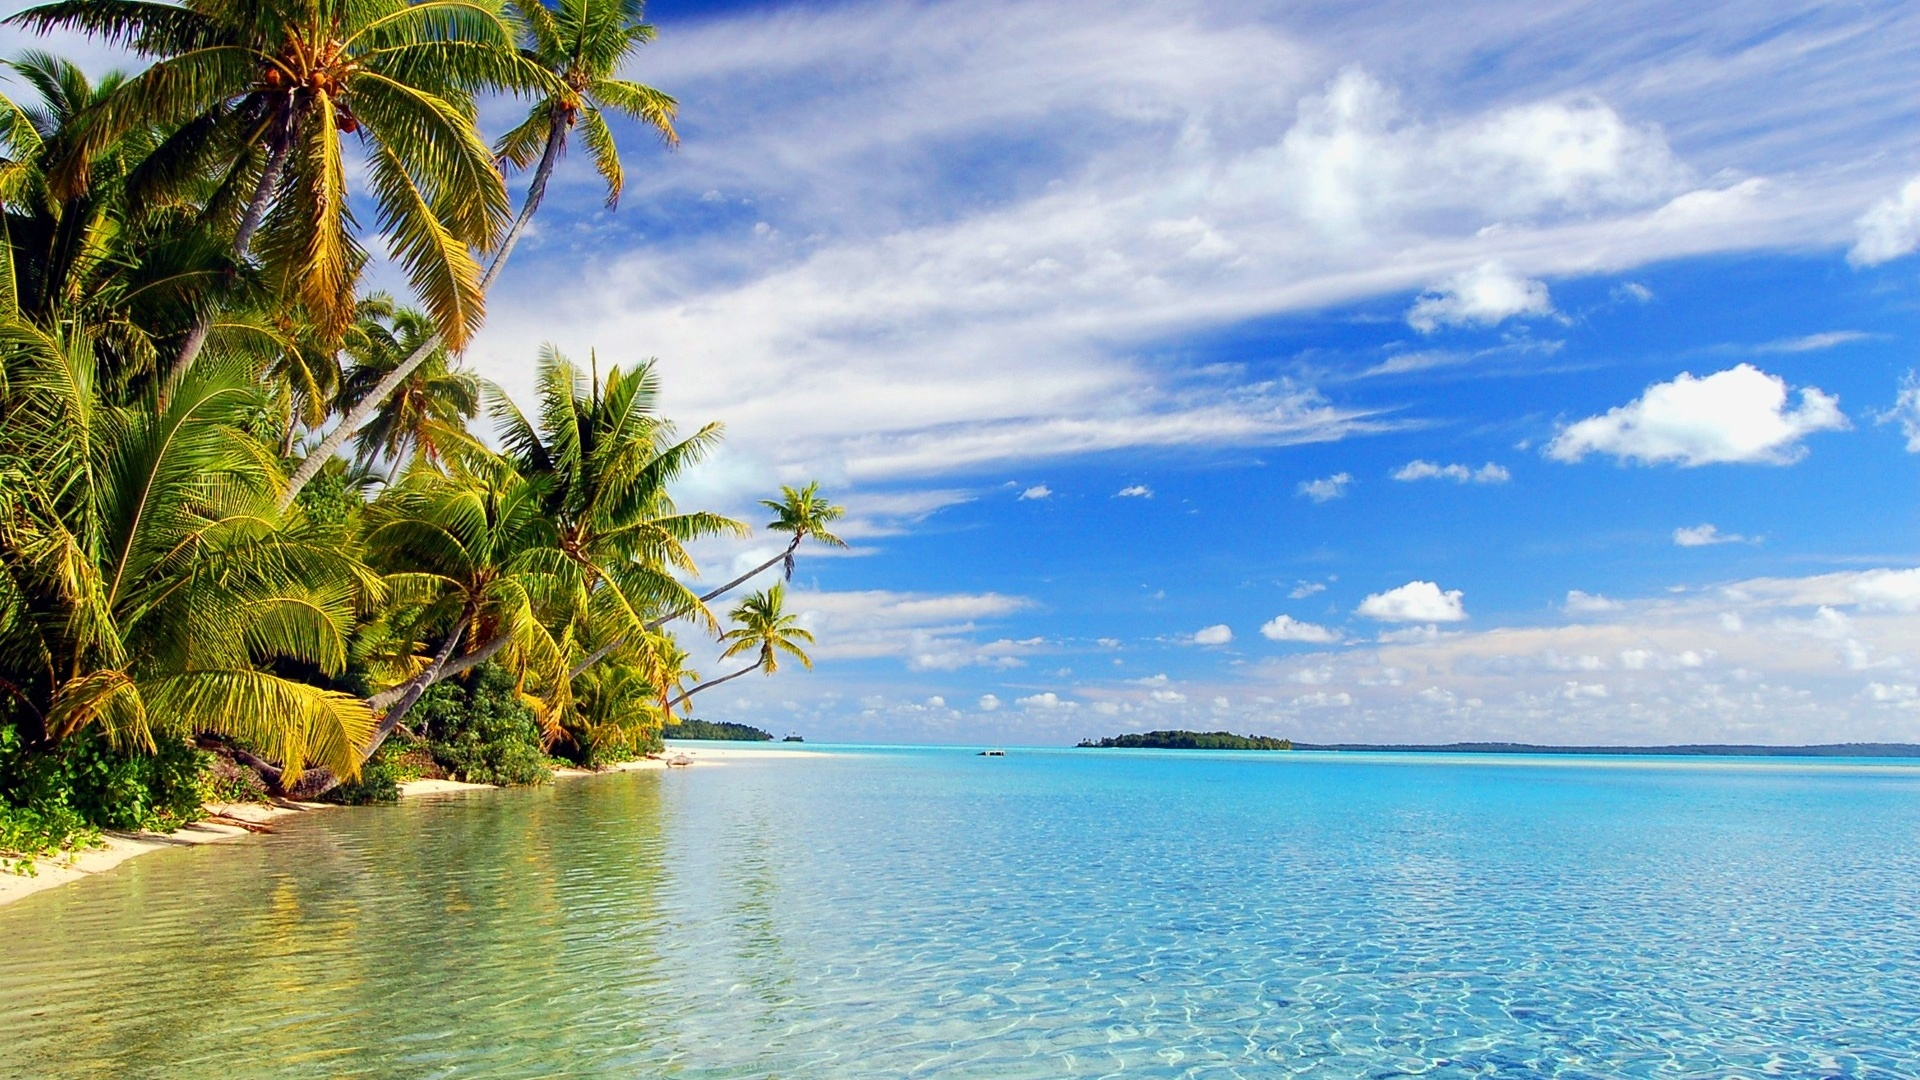 Wallpaper Tropical beach 1920x1200 HD Picture, Image